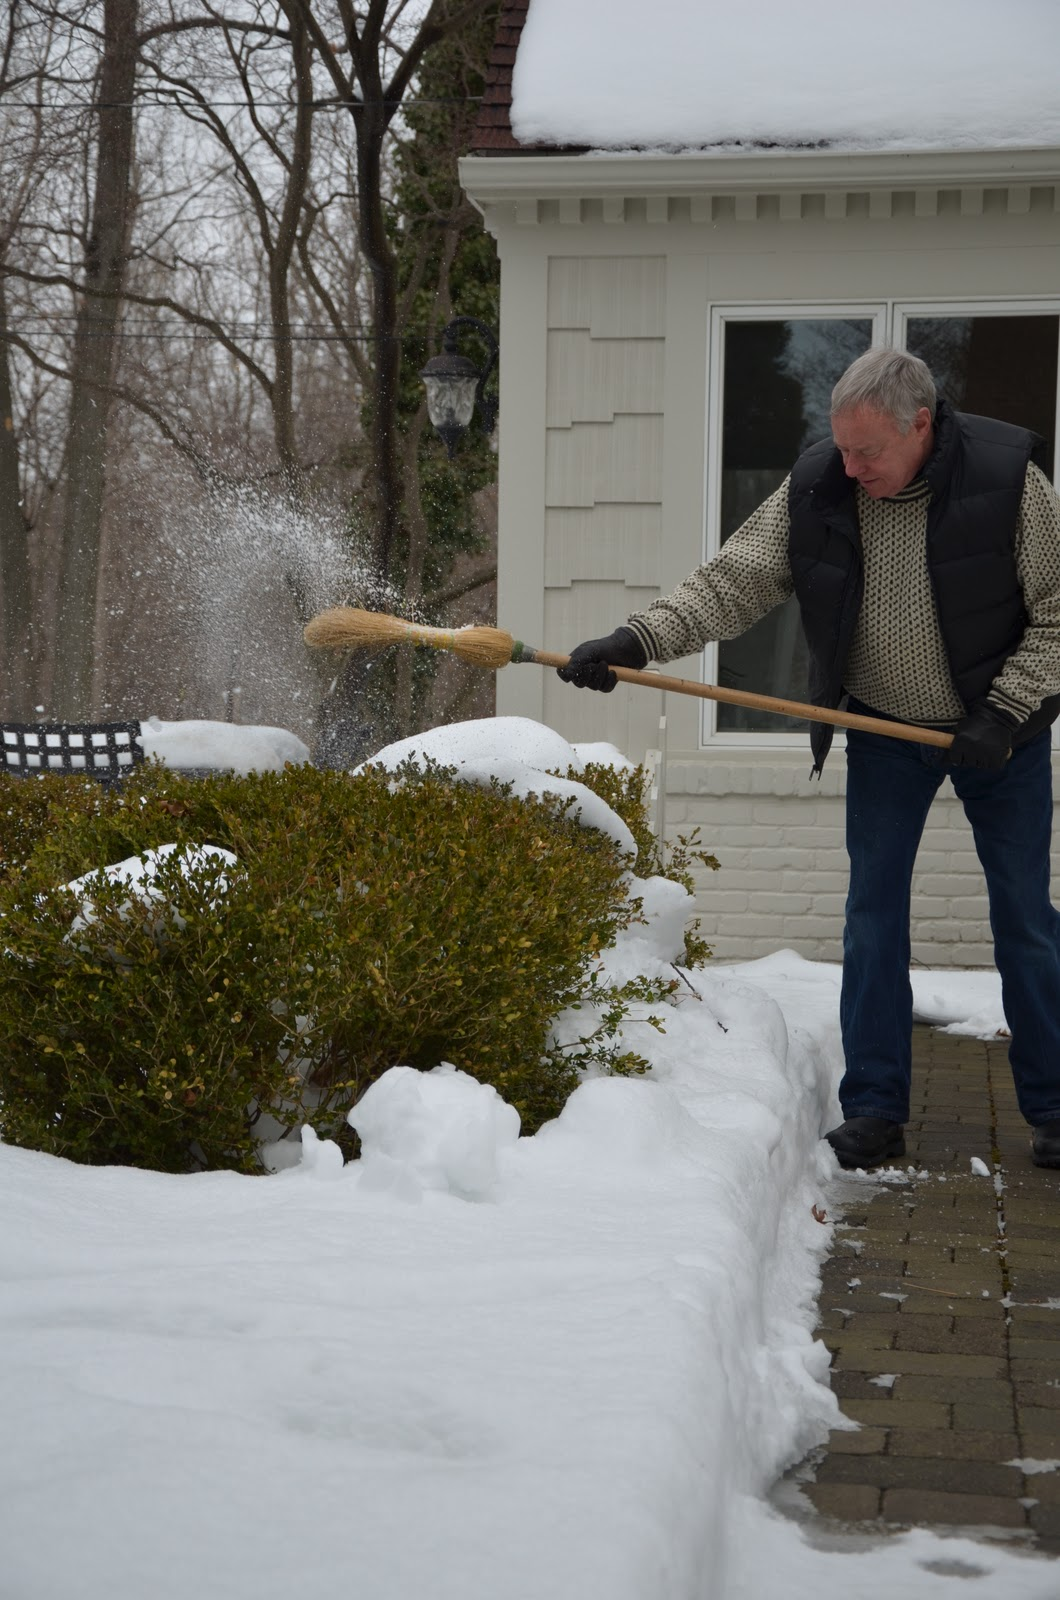 Zone Five and a Half: Shrubbery Flubbery -- Will Heavy Snow